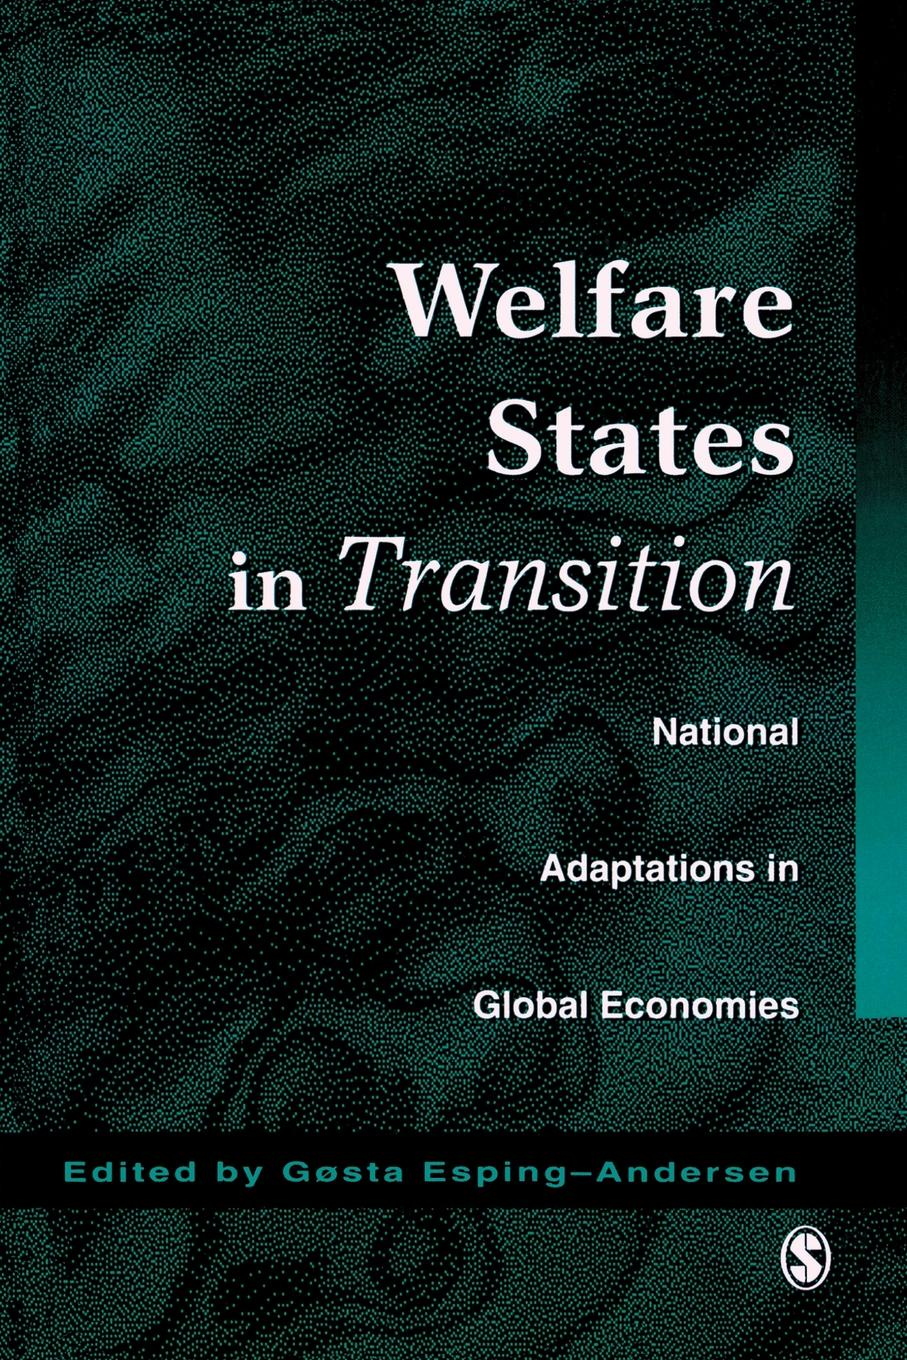 United Nations Research Institute for So Welfare States in Transition. National Adaptations in Global Economies